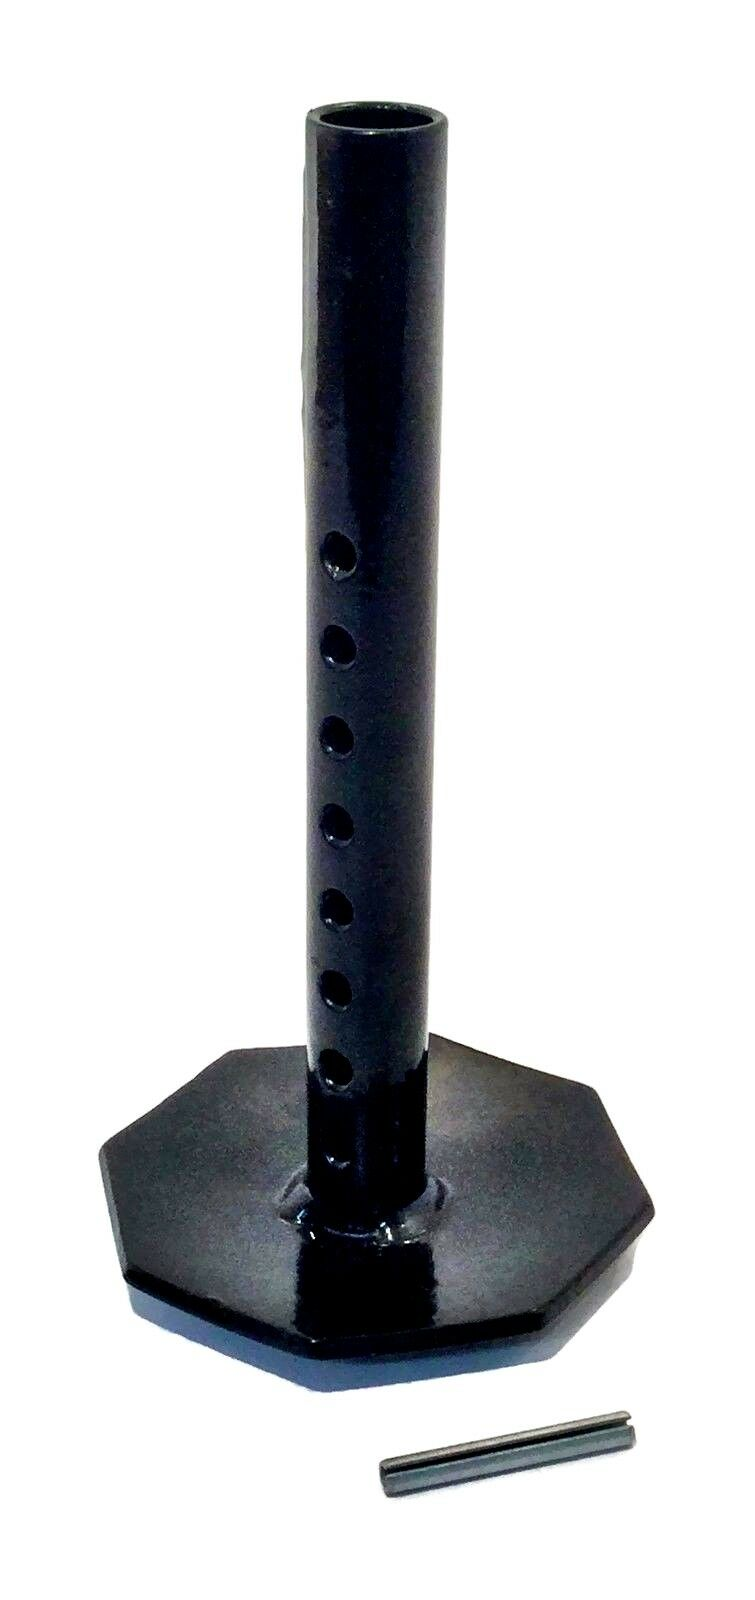 New Snow Plow STAND for Western Ultra Mount Snowplow 67847 Buyers SAM 1303206